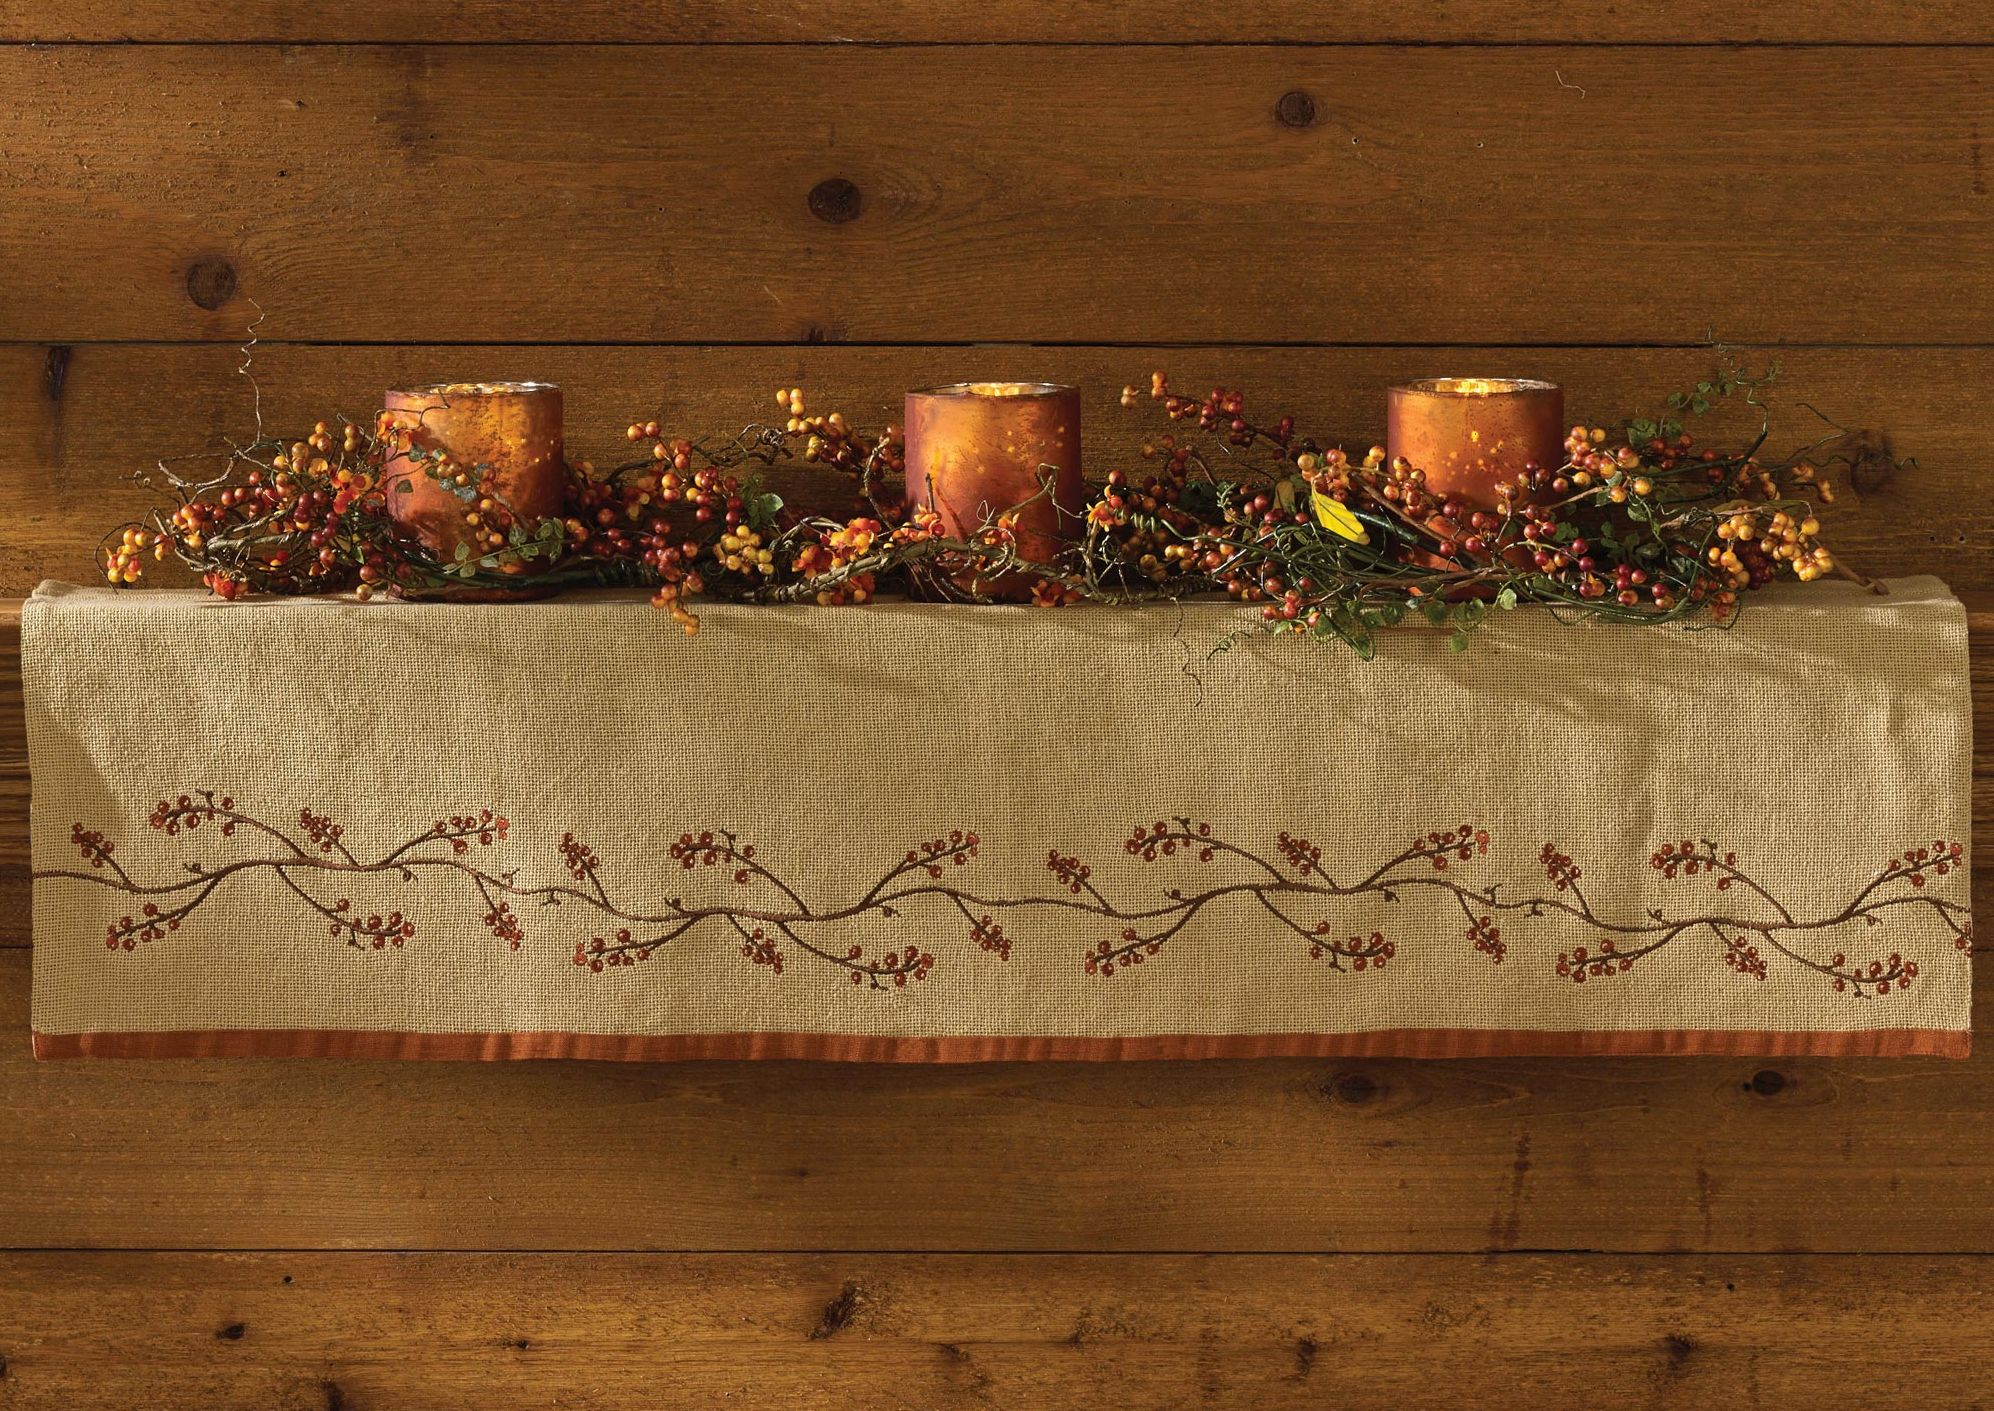 Harvest decor for your Thanksgiving table | Primitive Home ... | 1994 x 1411 jpeg 681kB